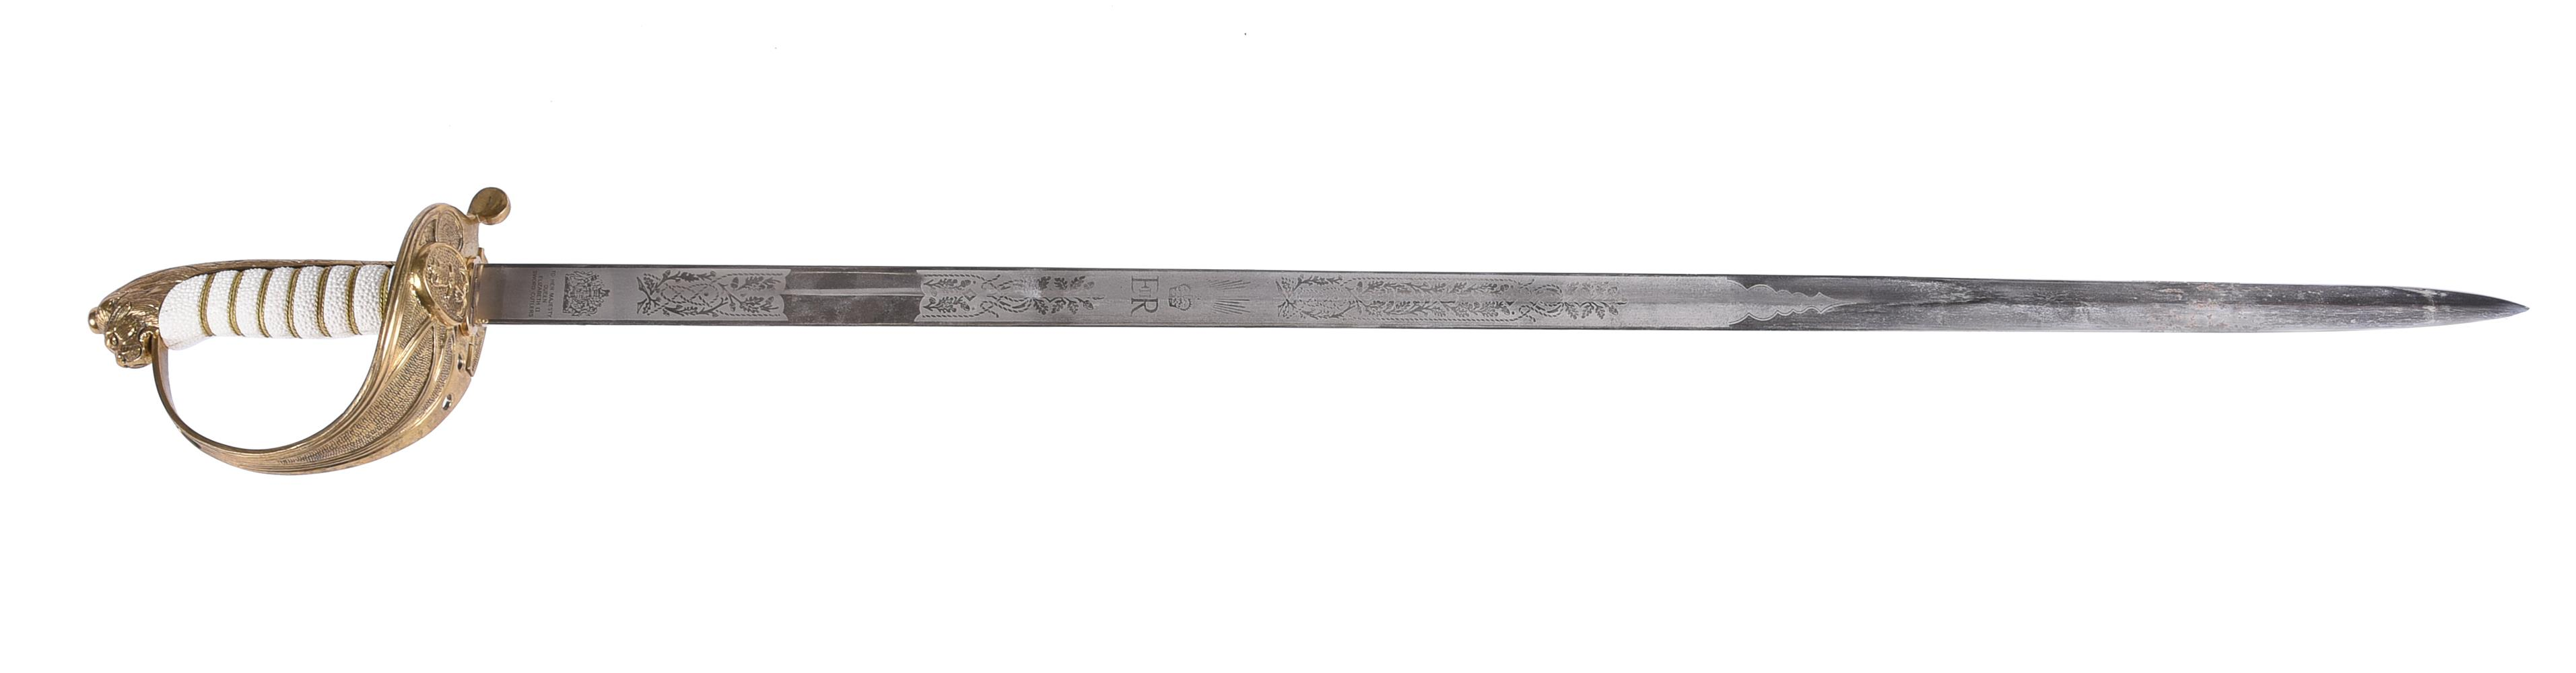 An Elizabeth II Royal Naval officer's sword and scabbard - Image 2 of 7